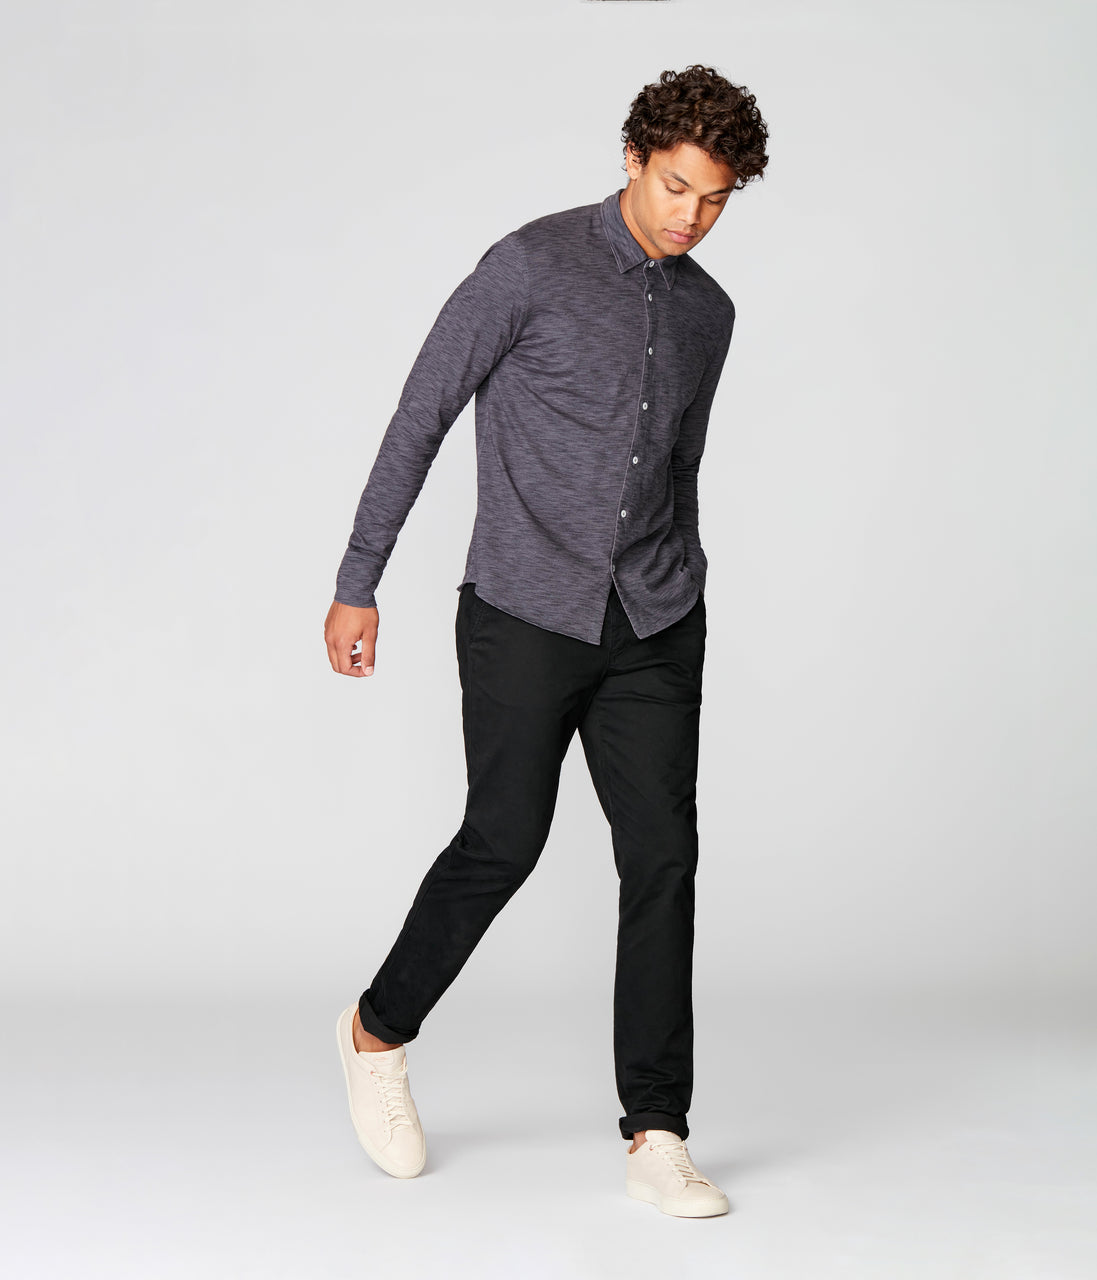 On-Point Soft Shirt in Black Marl Soft Slub - Magnet - Good Man Brand - On-Point Soft Shirt in Black Marl Soft Slub - Magnet